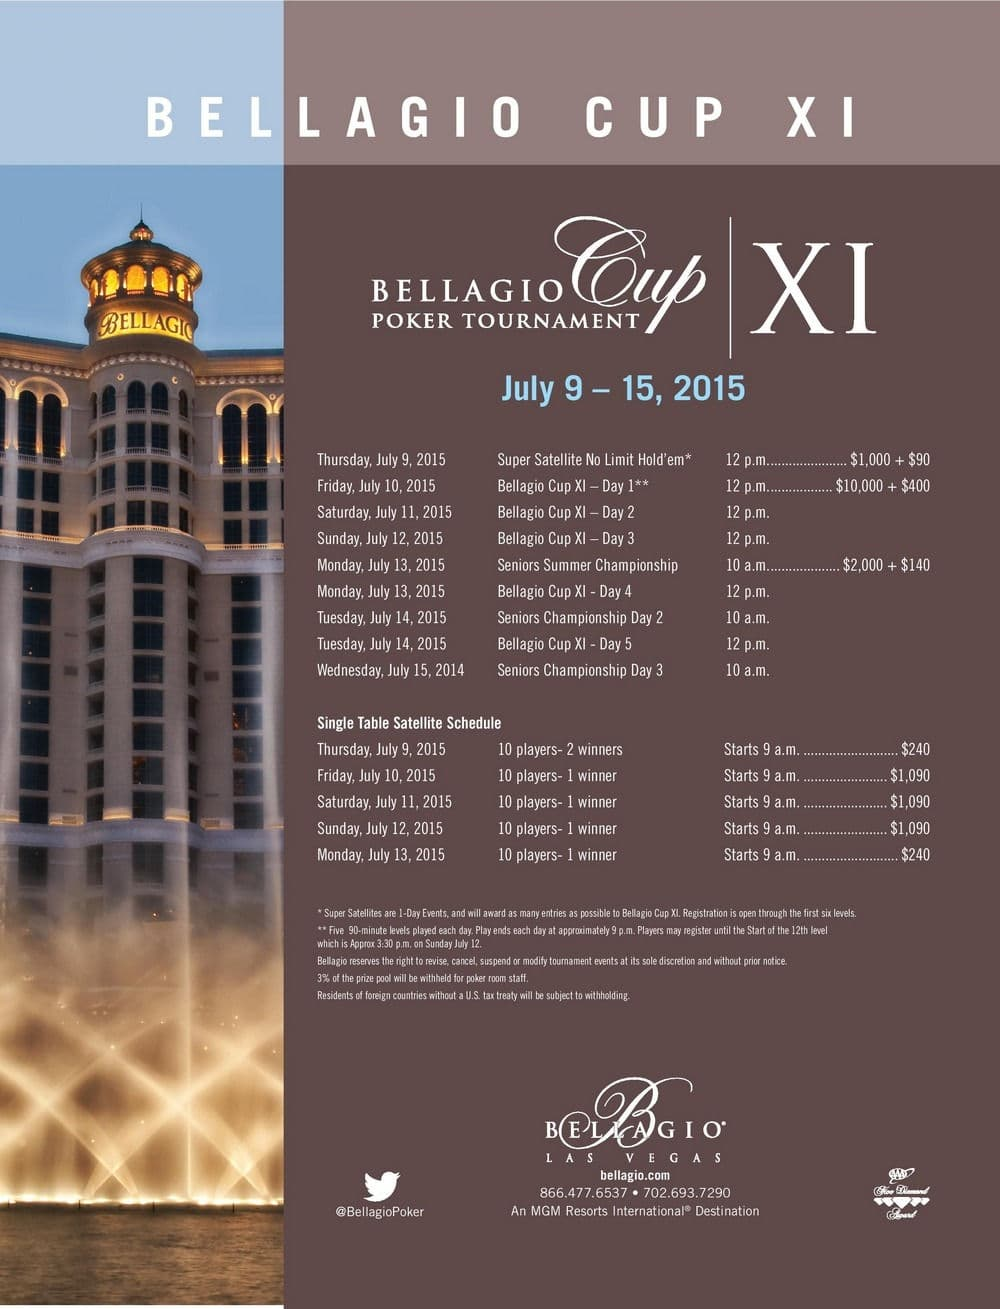 bellagio cup XI 2015 schedule